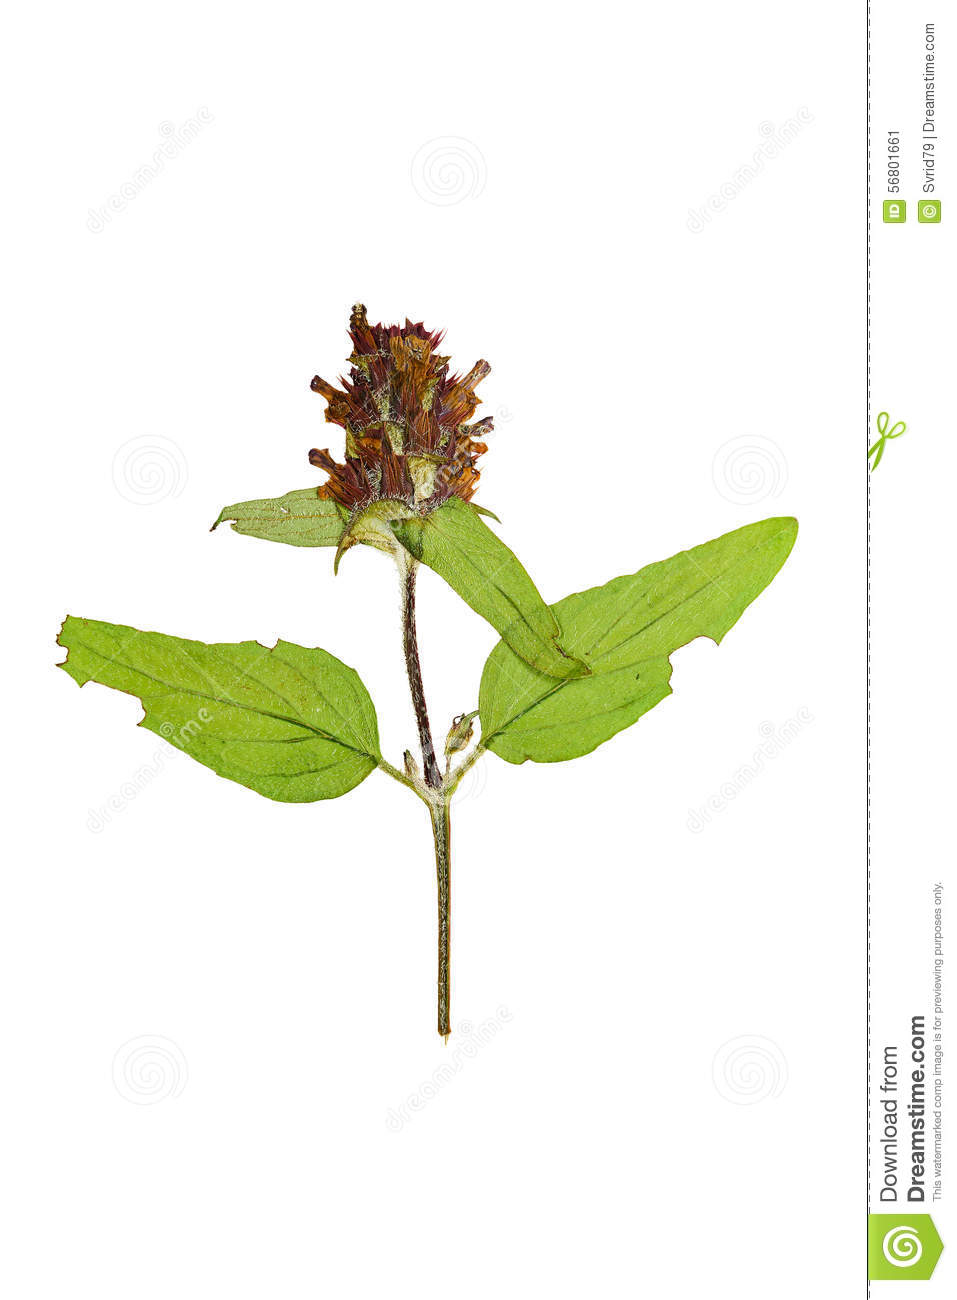 Pressed And Dried Flower On A Stalk Prunella Vulgaris. Isolated.